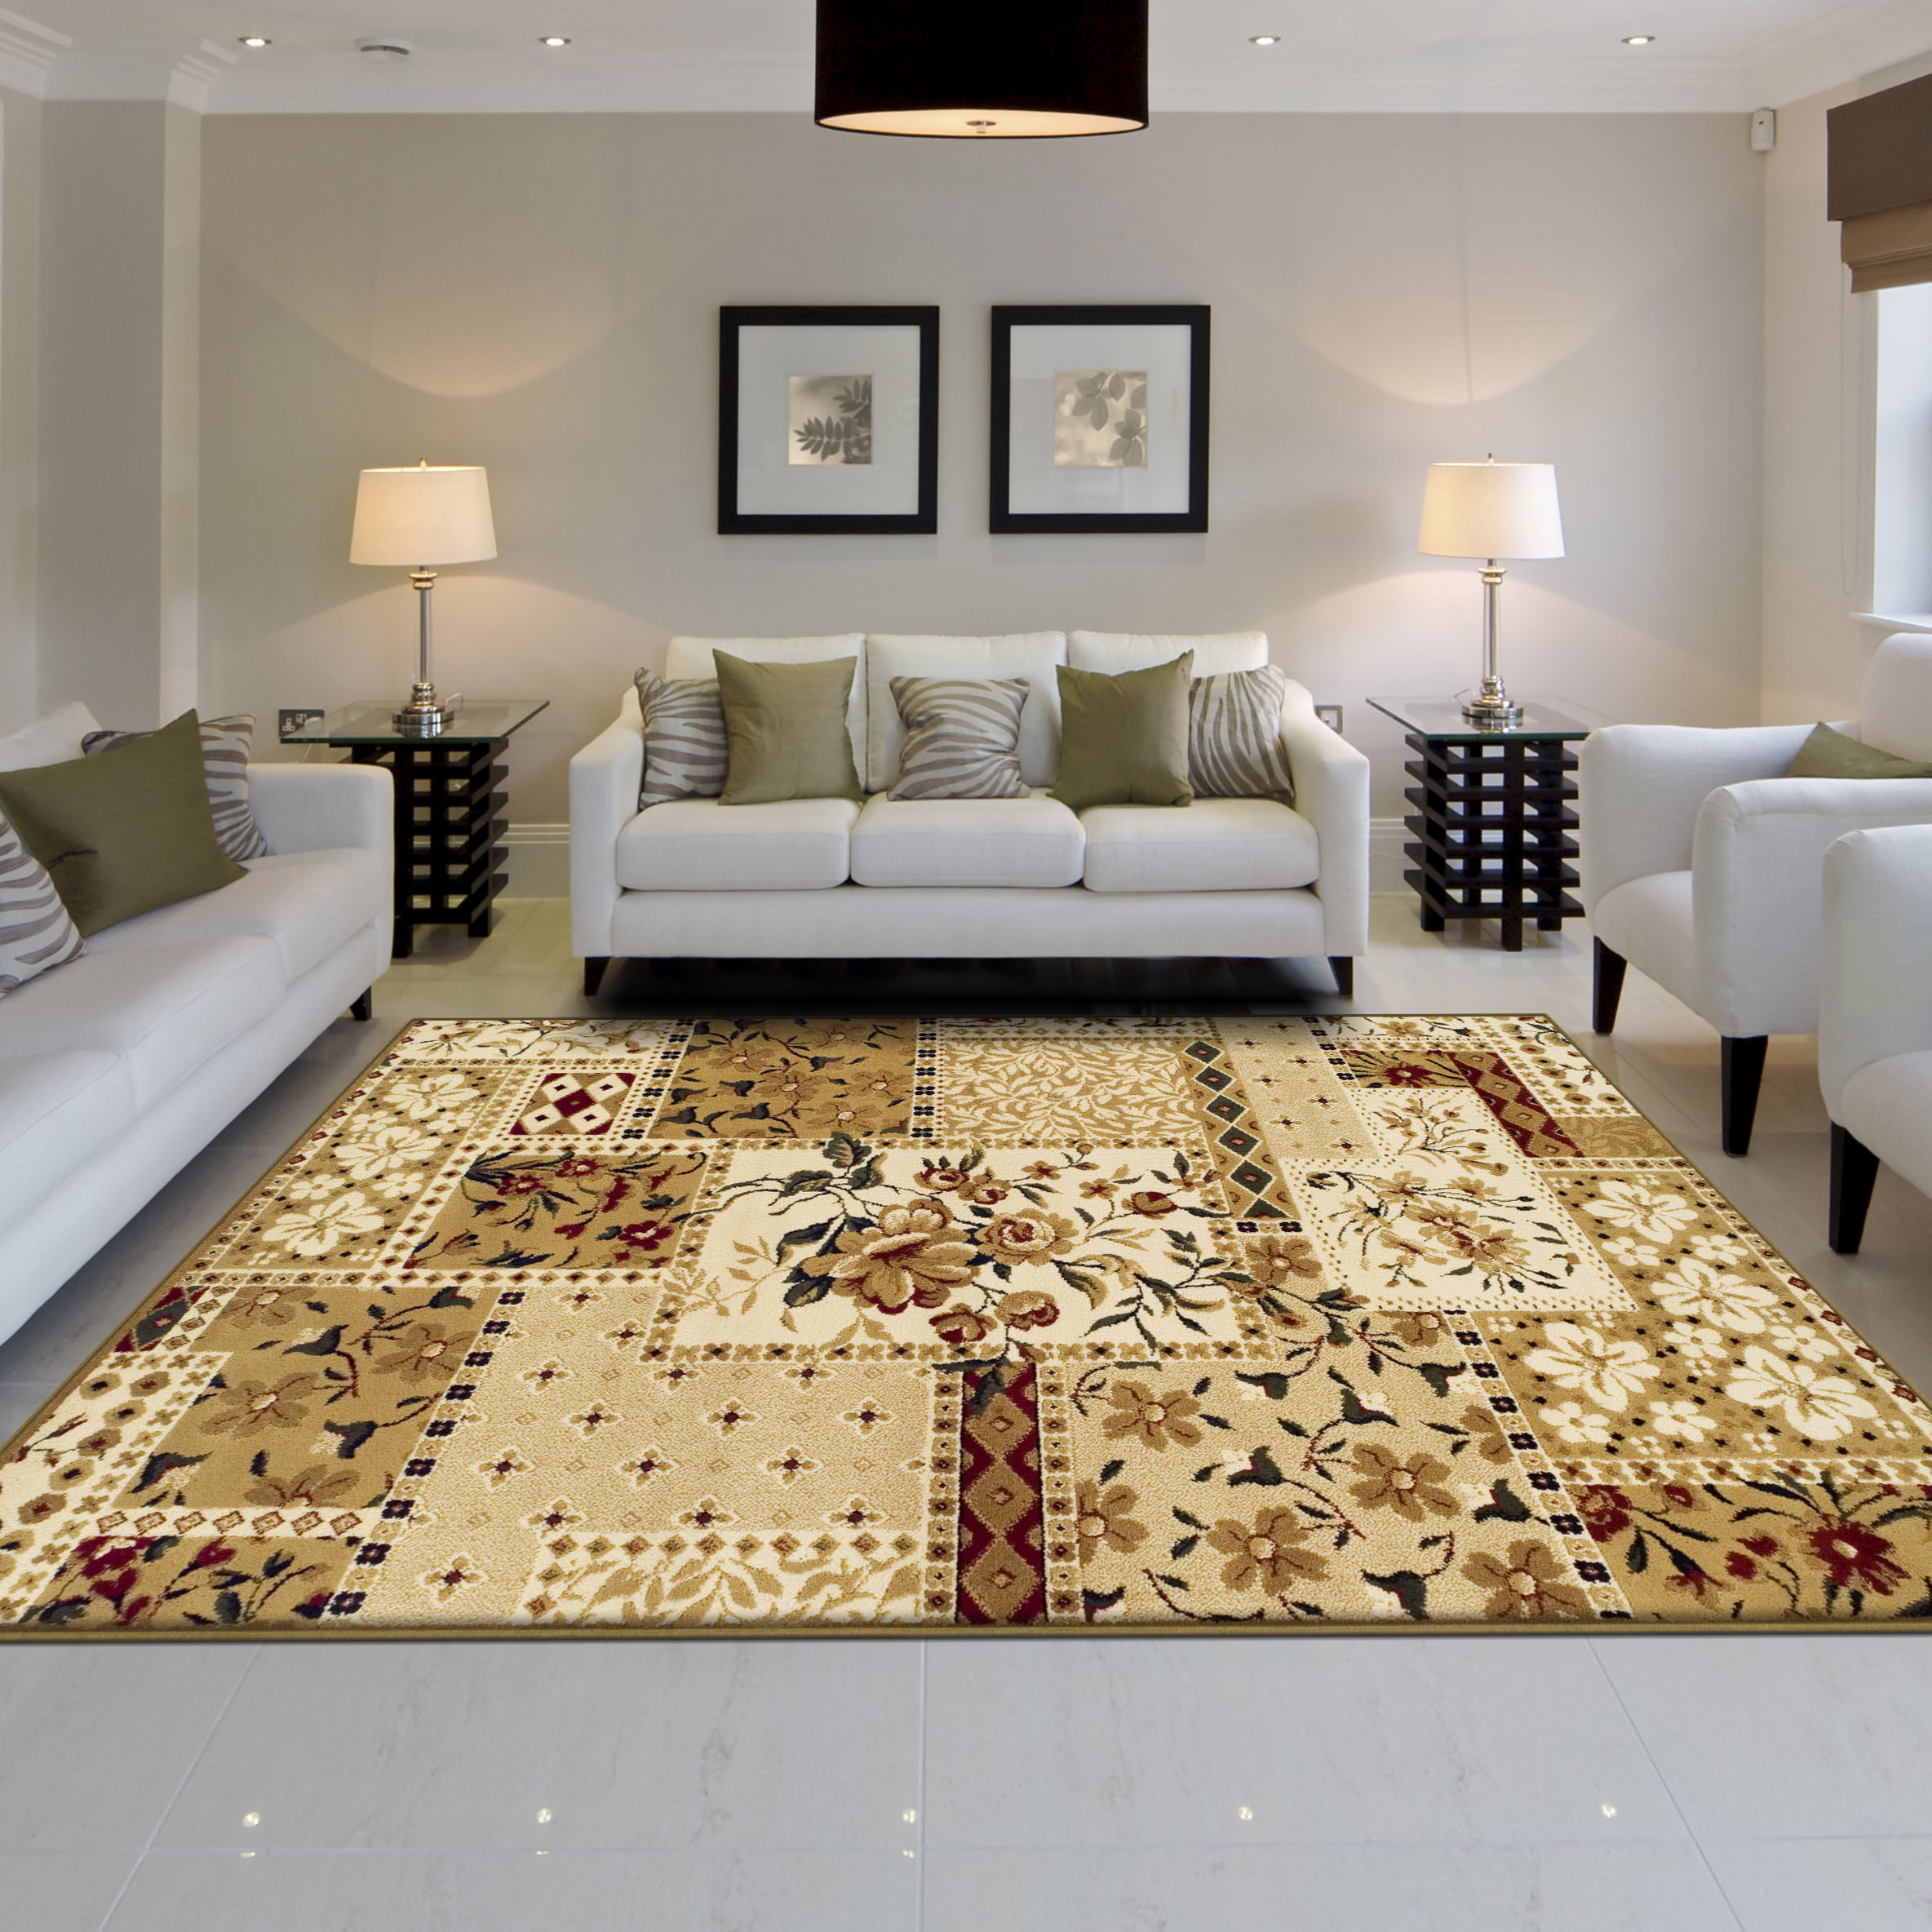 Superior Beautiful Floral Patchwork Design, 10mm Pile with Jute Backing, Affordable Contemporary Flower Patch Collection Area Rug, Beige